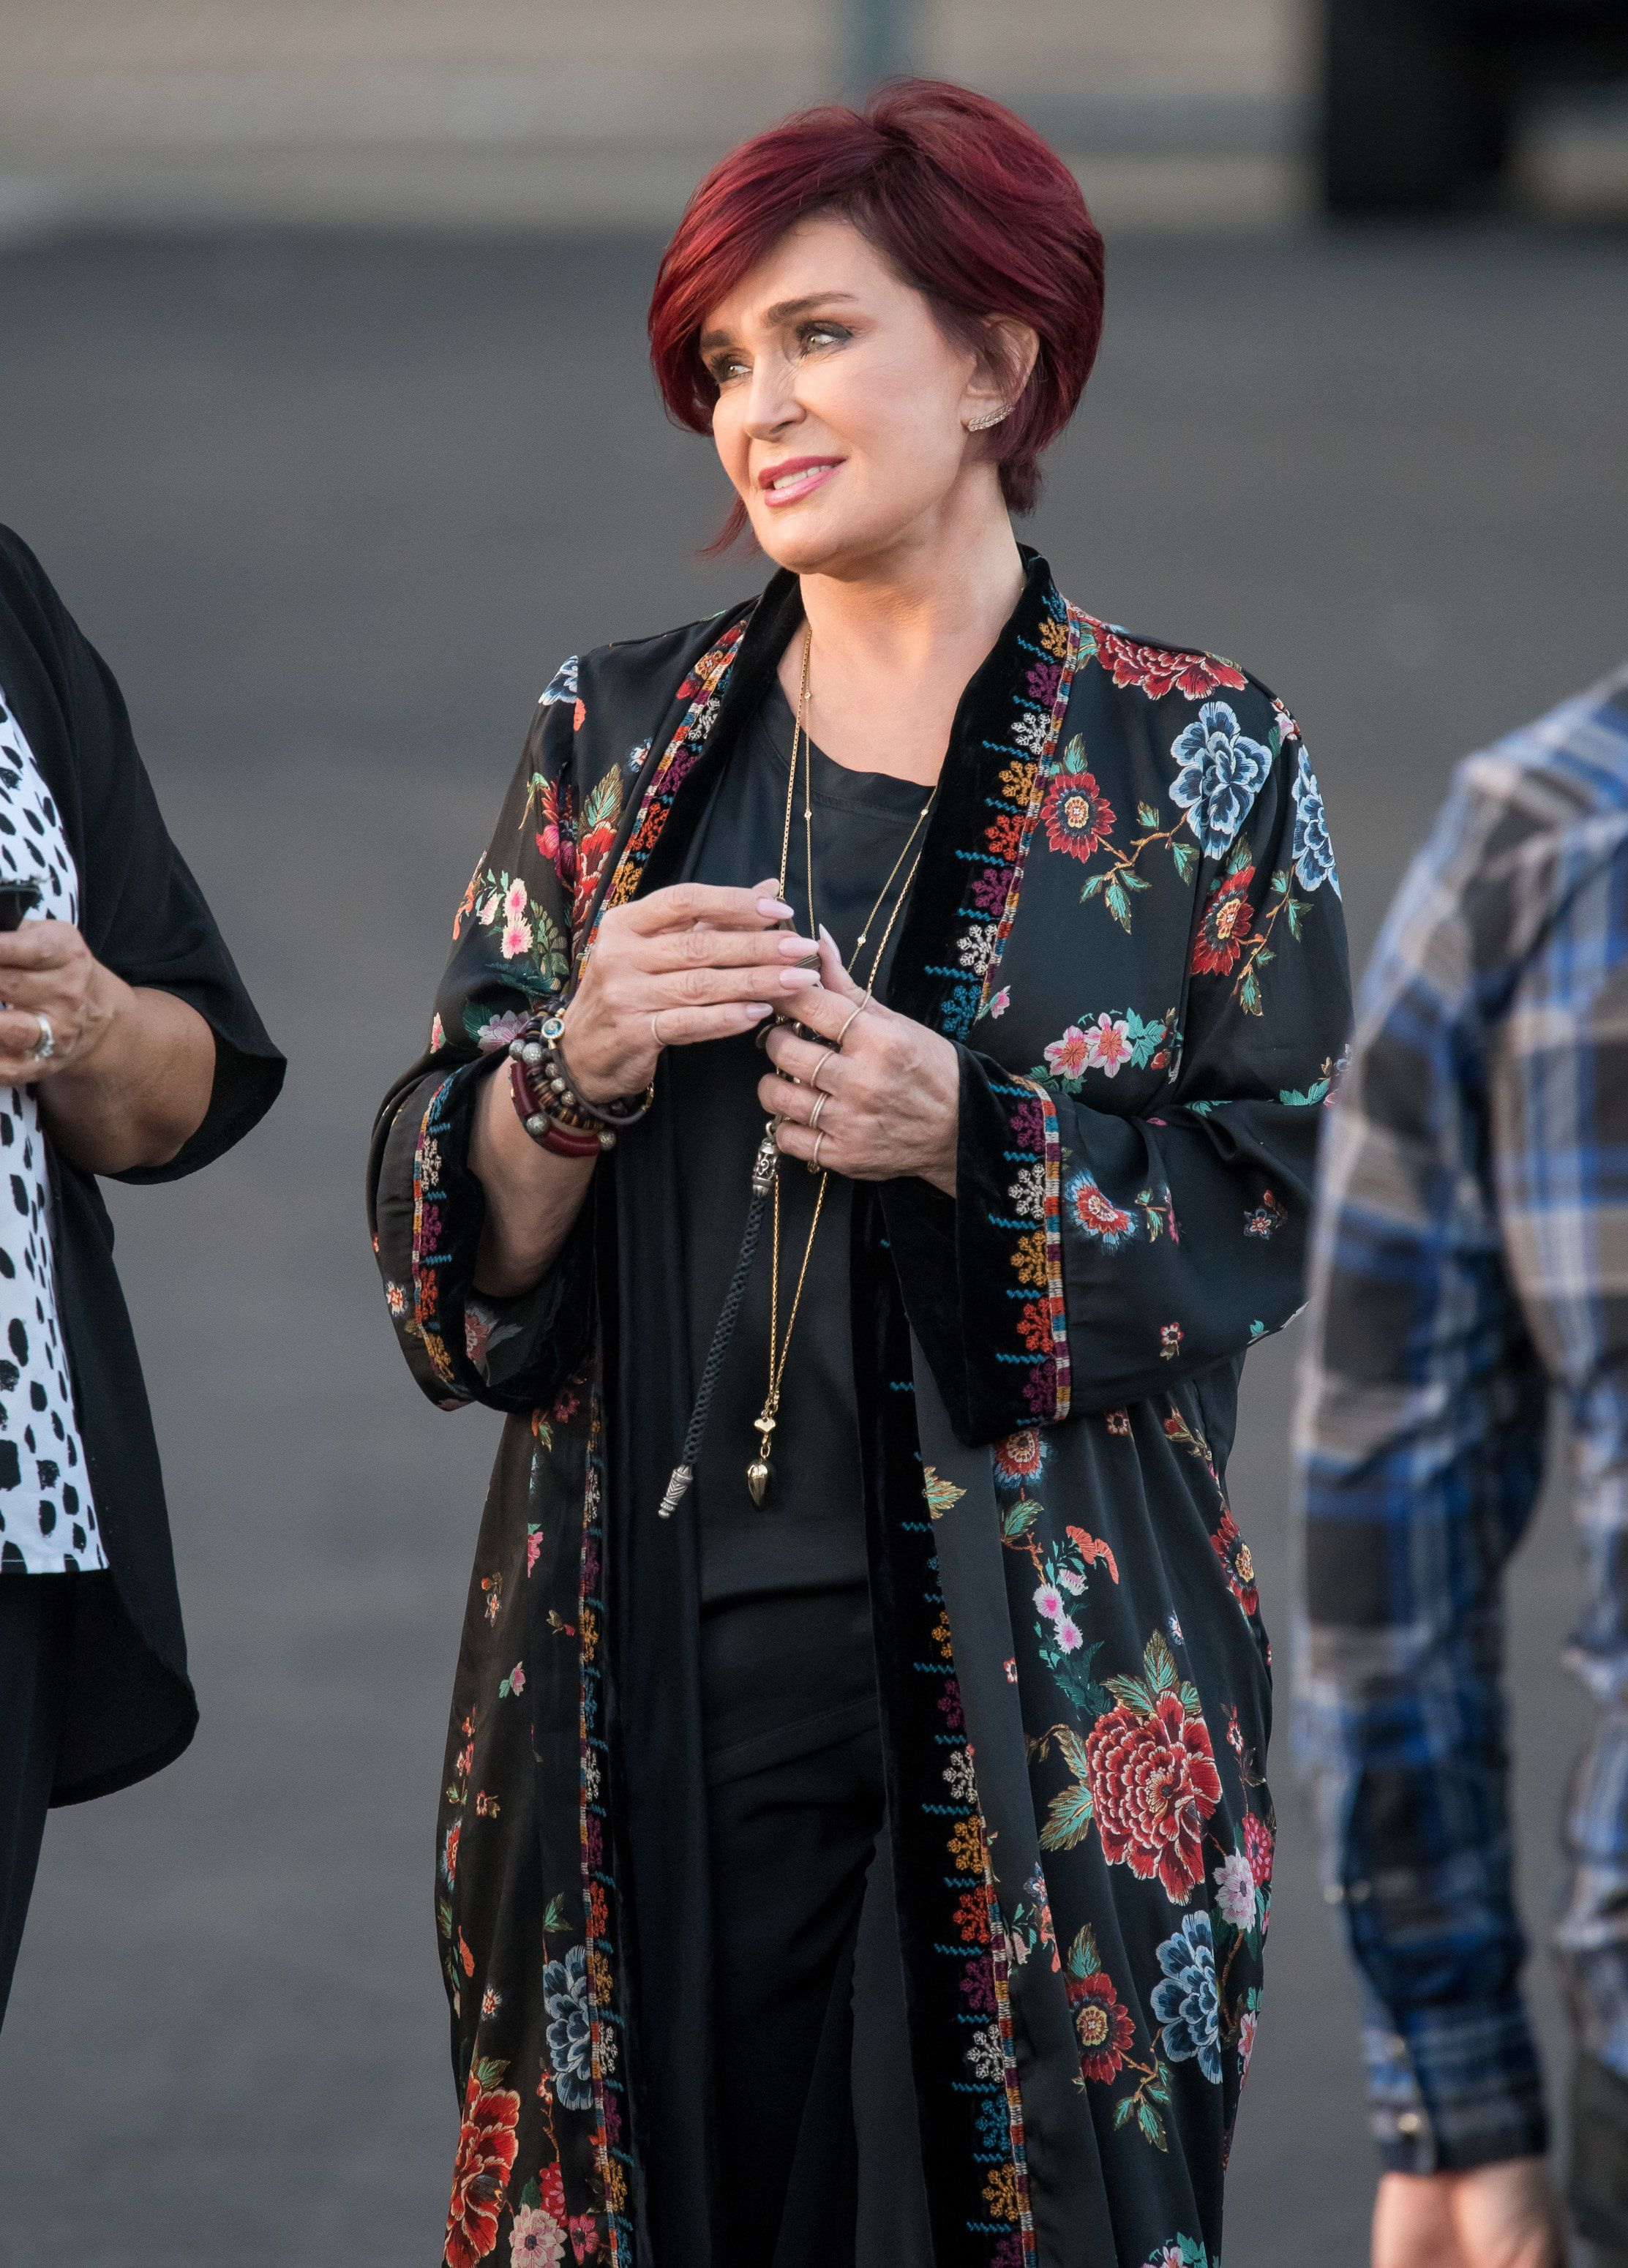 X FACTOR: Sharon Osbourne Finally Comes Clean About Being Axed From 'The X